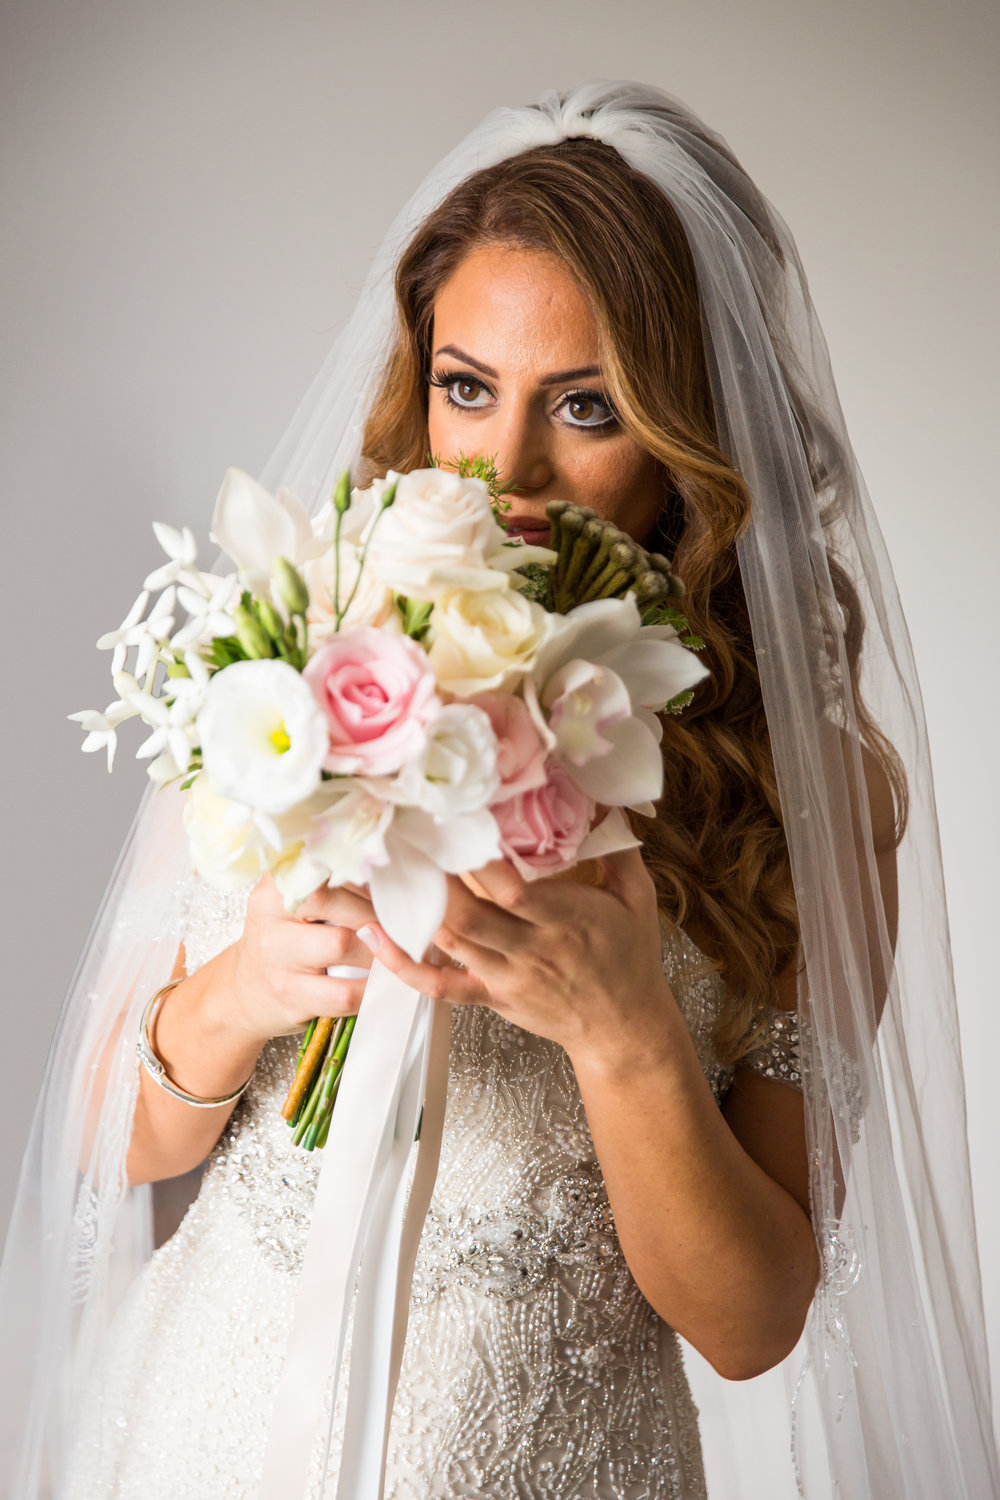 Pink and White Rose Bridal Bouquet - A Curzon Hall Wedding - T-One Photography